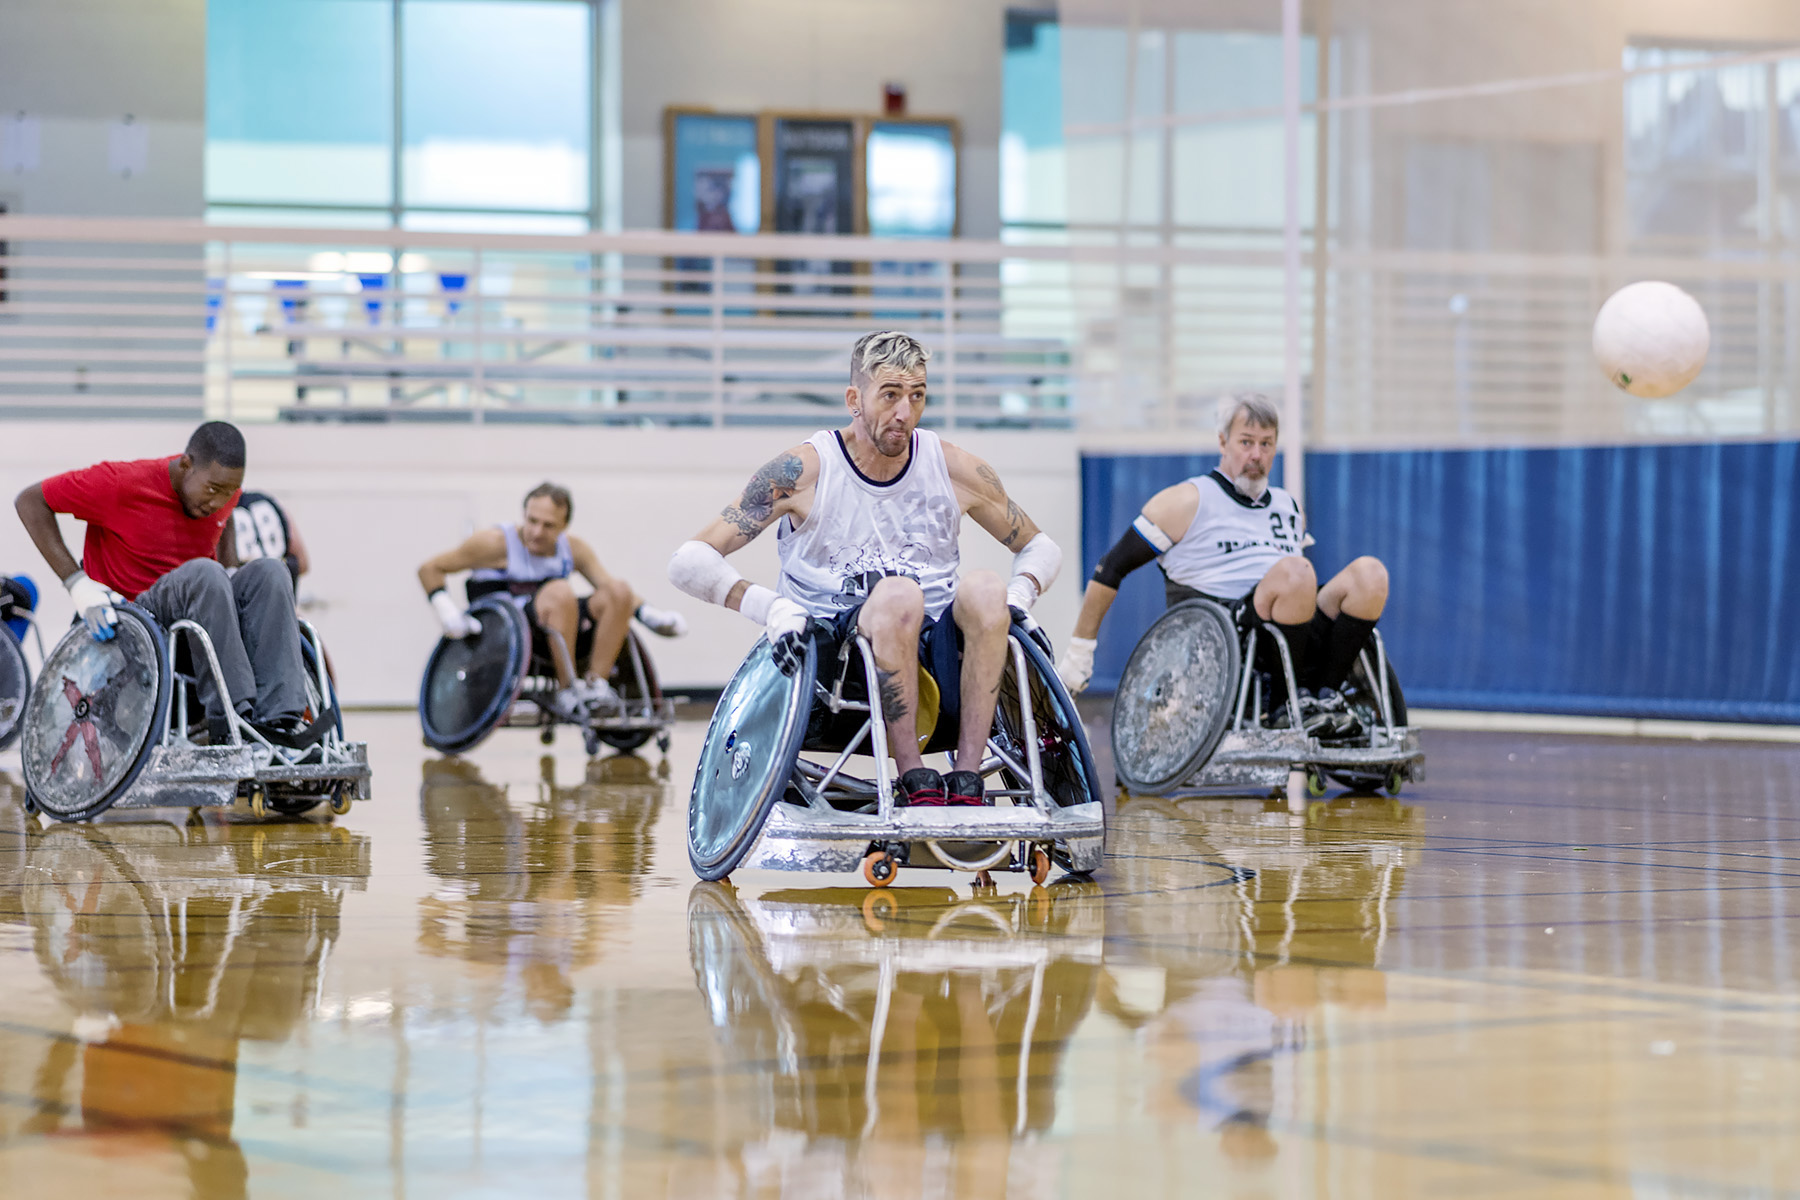 MTSU-based wheelchair rugby program rolling toward bright future